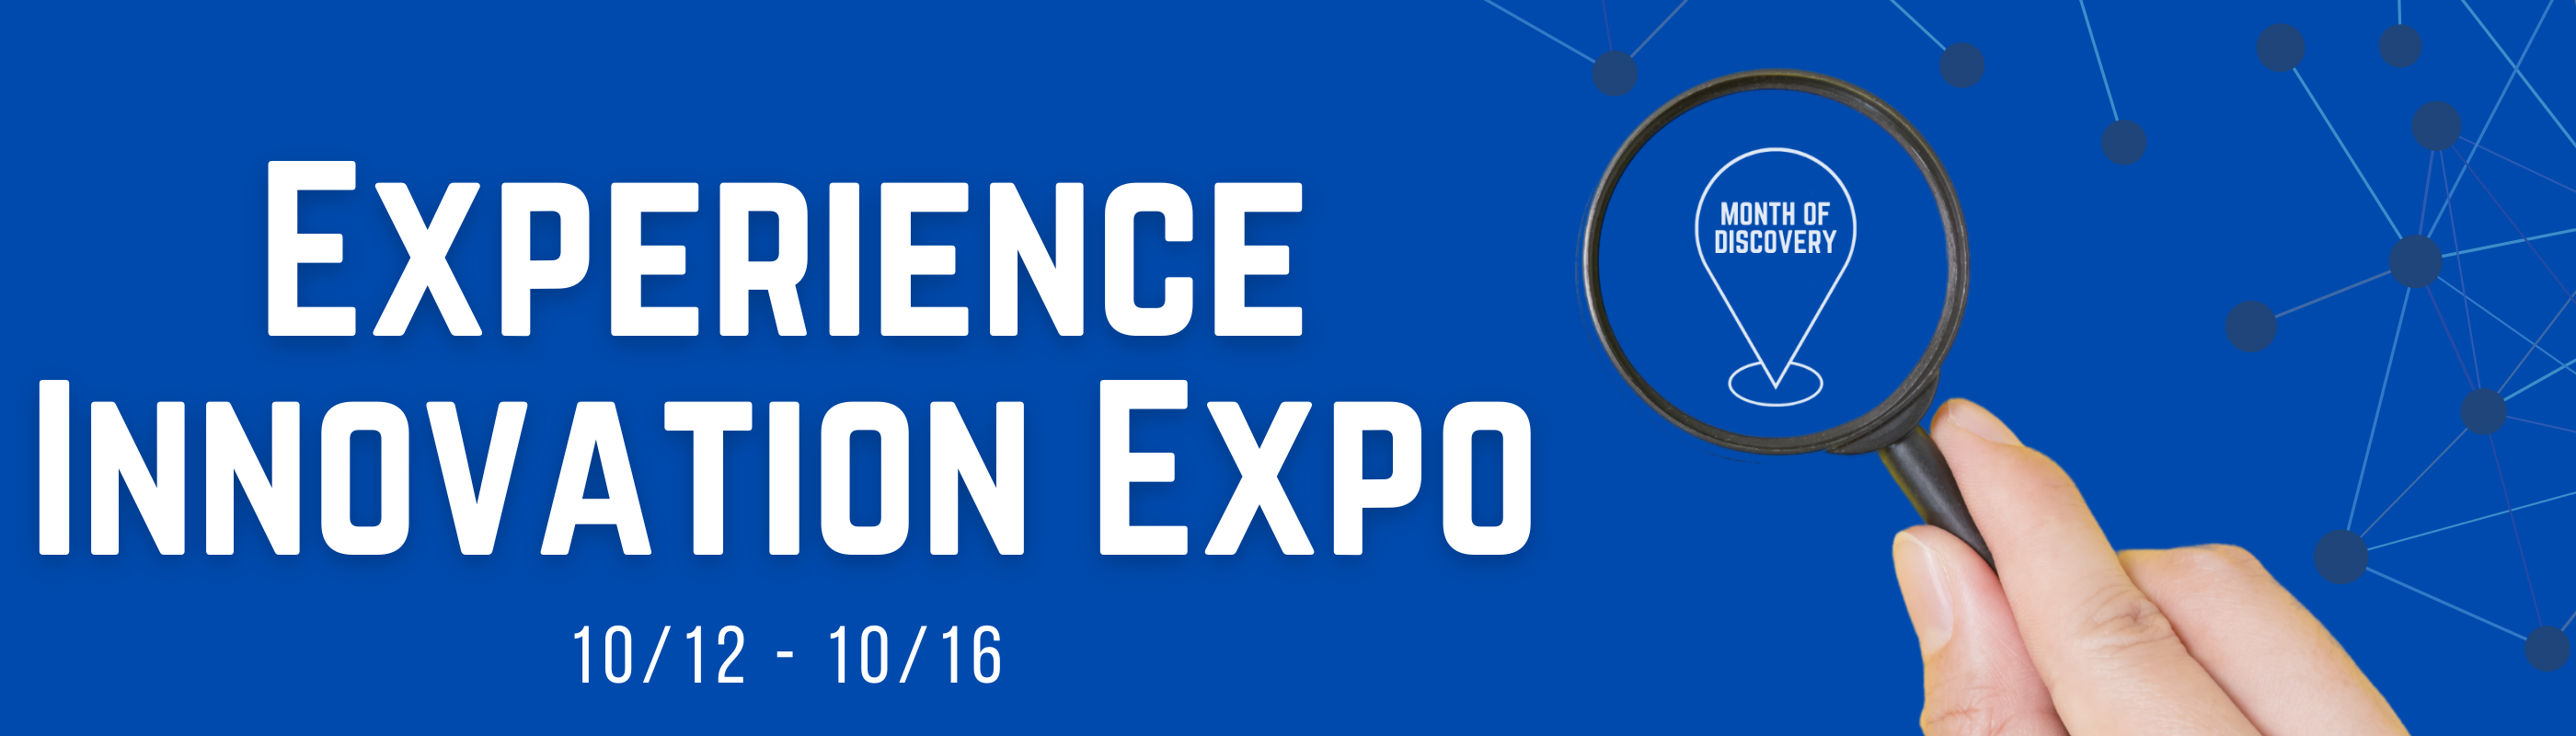 Experience Innovation Expo